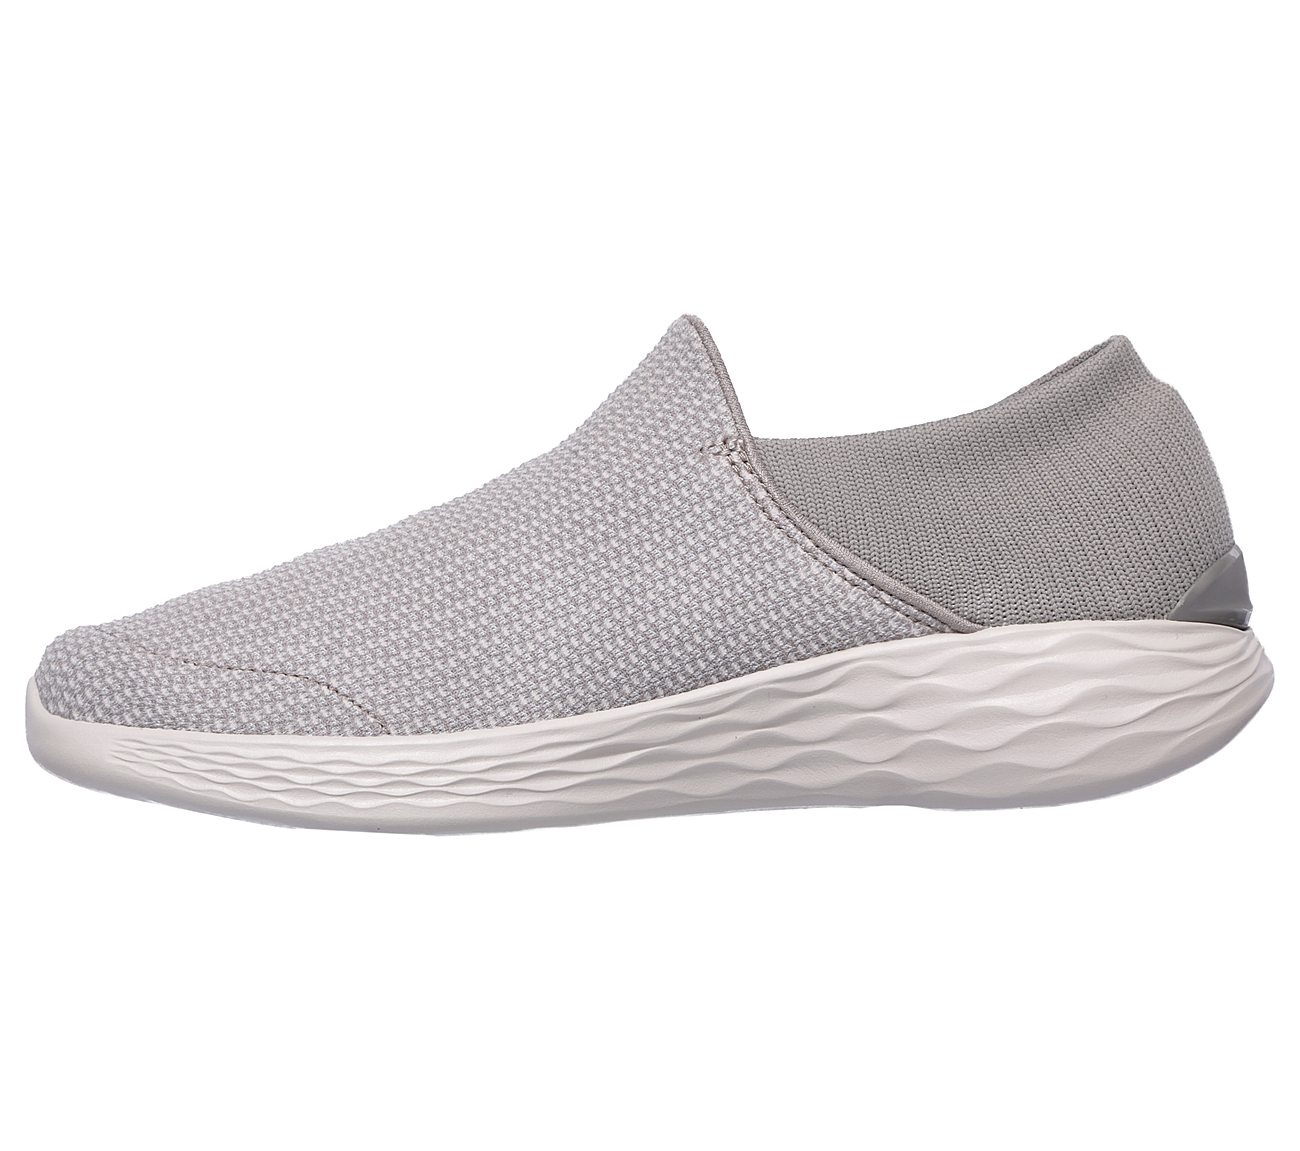 SKECHERS YOU - Mantra YOU by skechers Shoes